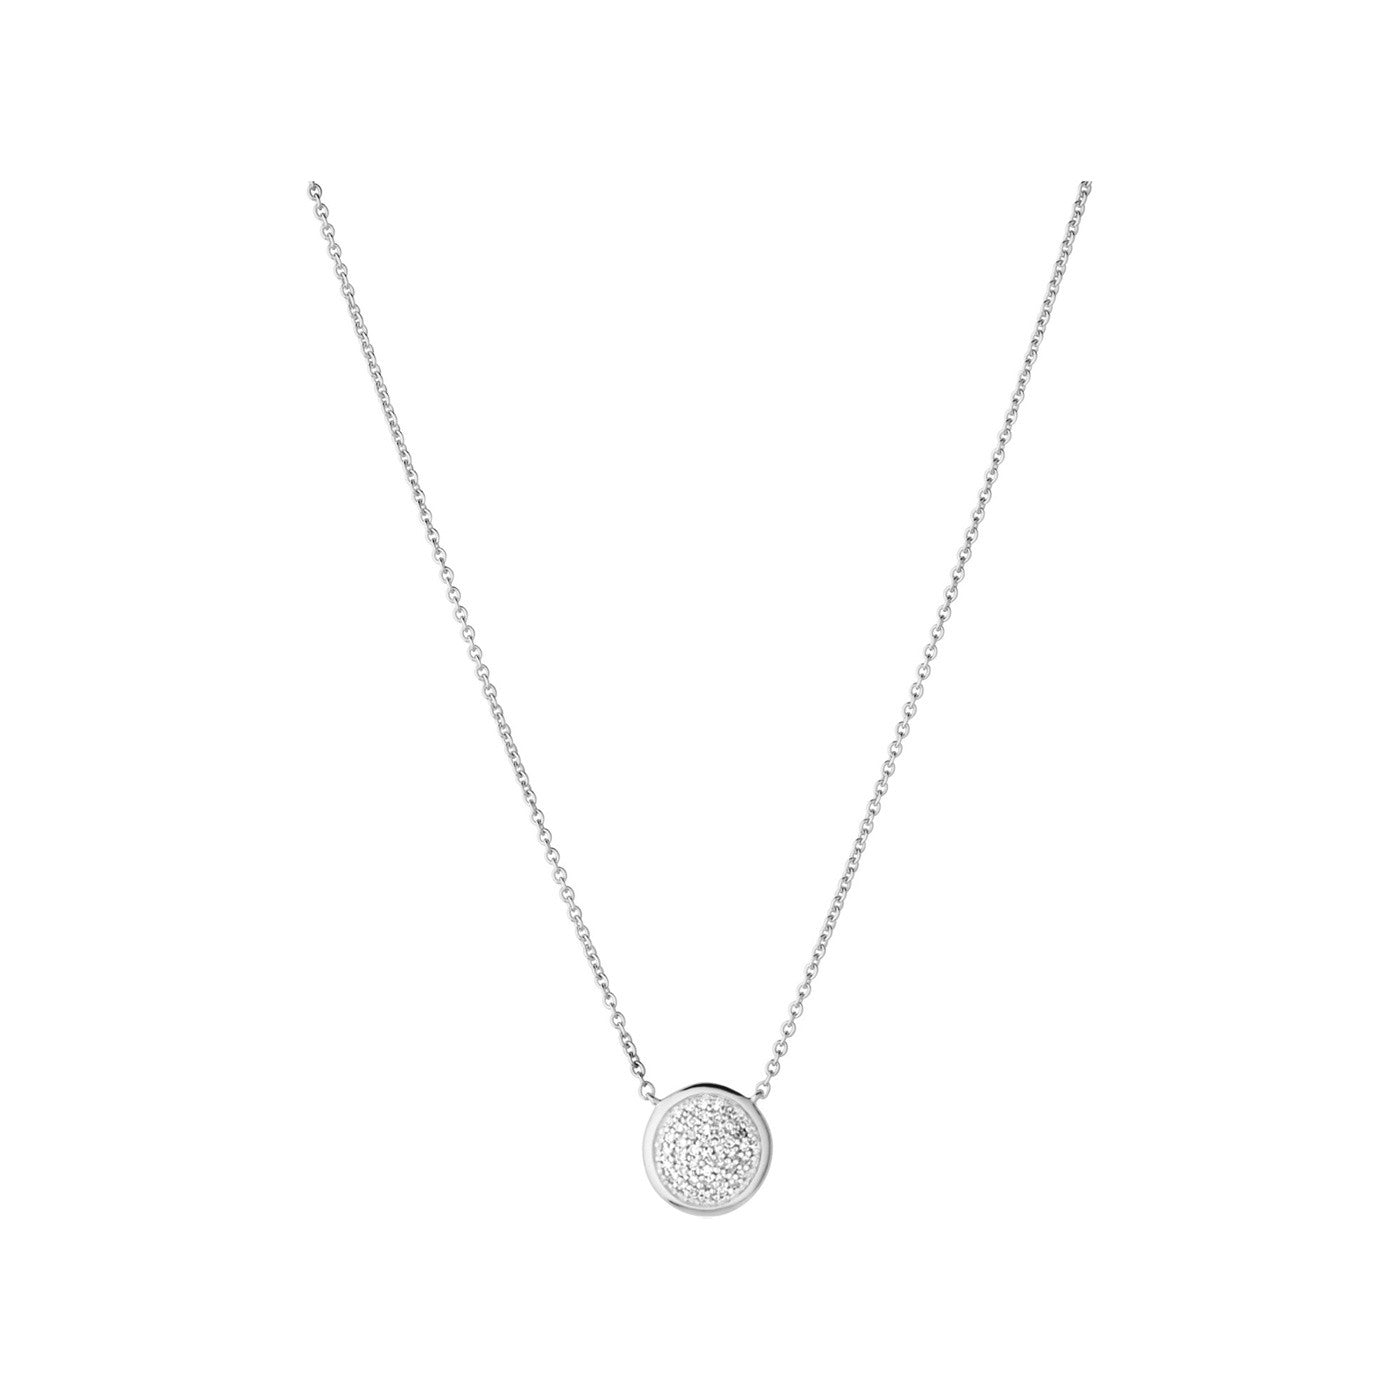 Links of London Diamond Essentials Pave Round Necklace - 5020.2724